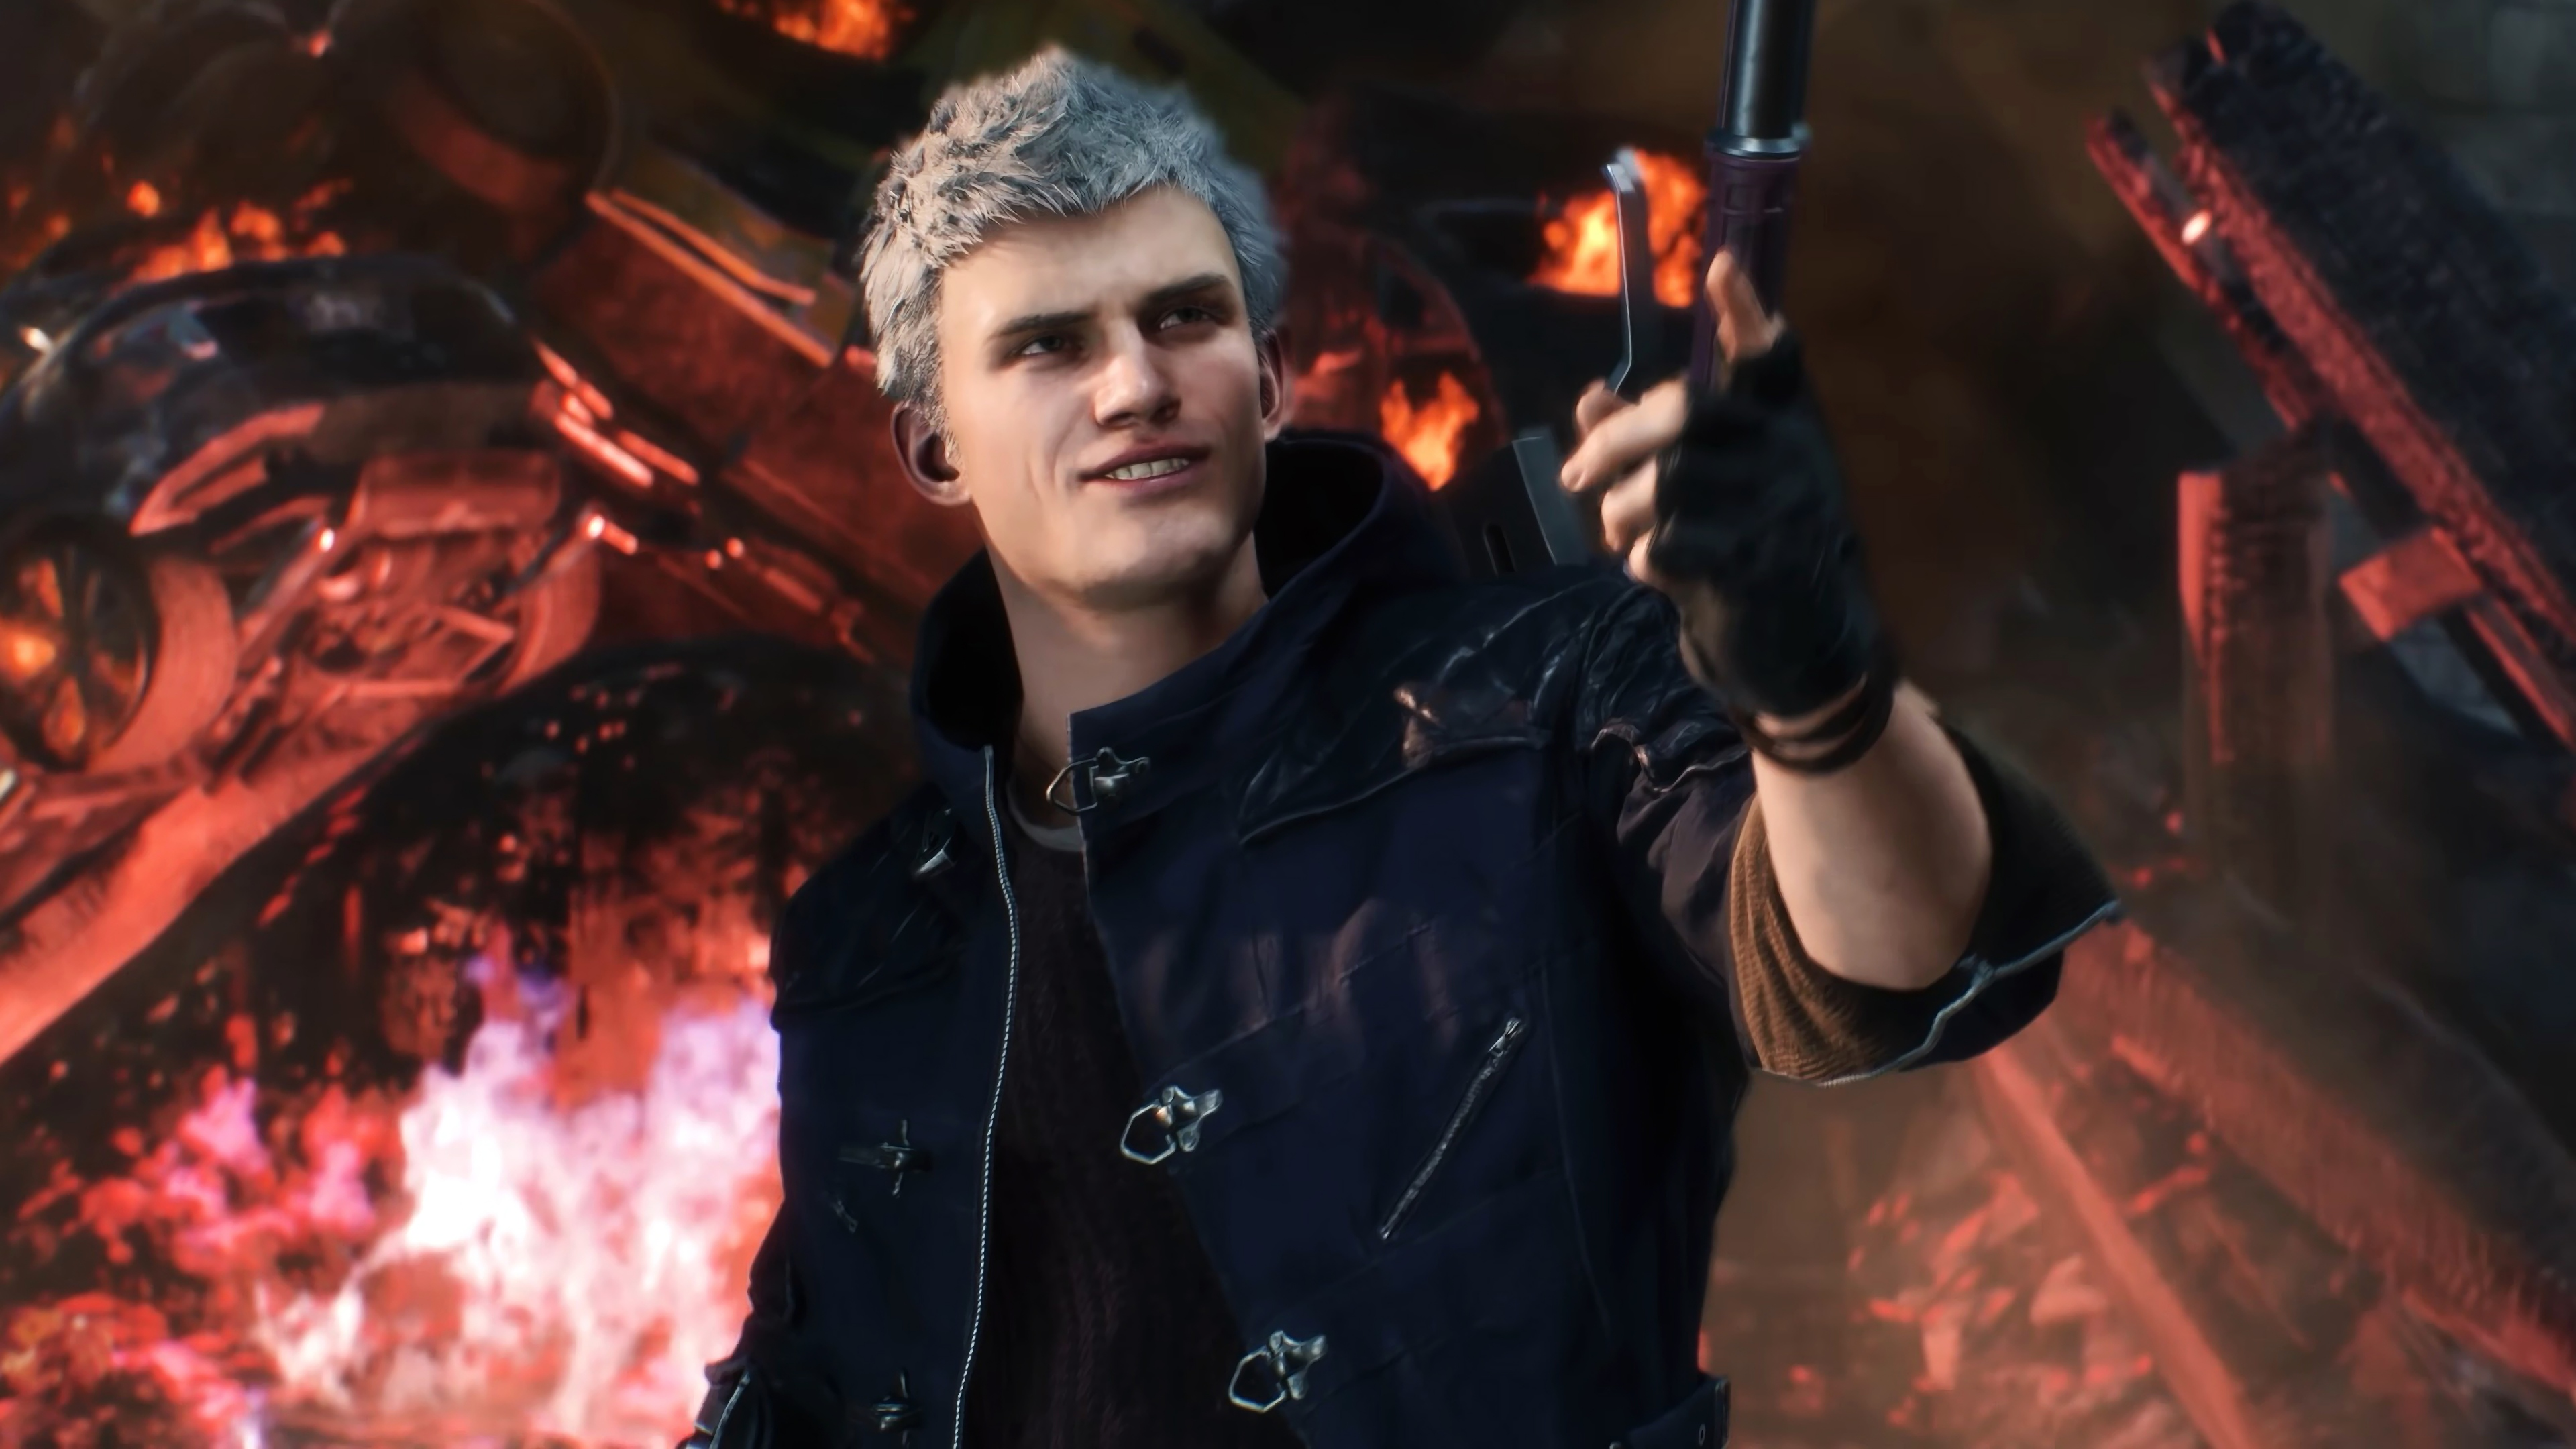 Devil May Cry Nero 4k Ultra Hd Wallpaper Background Image